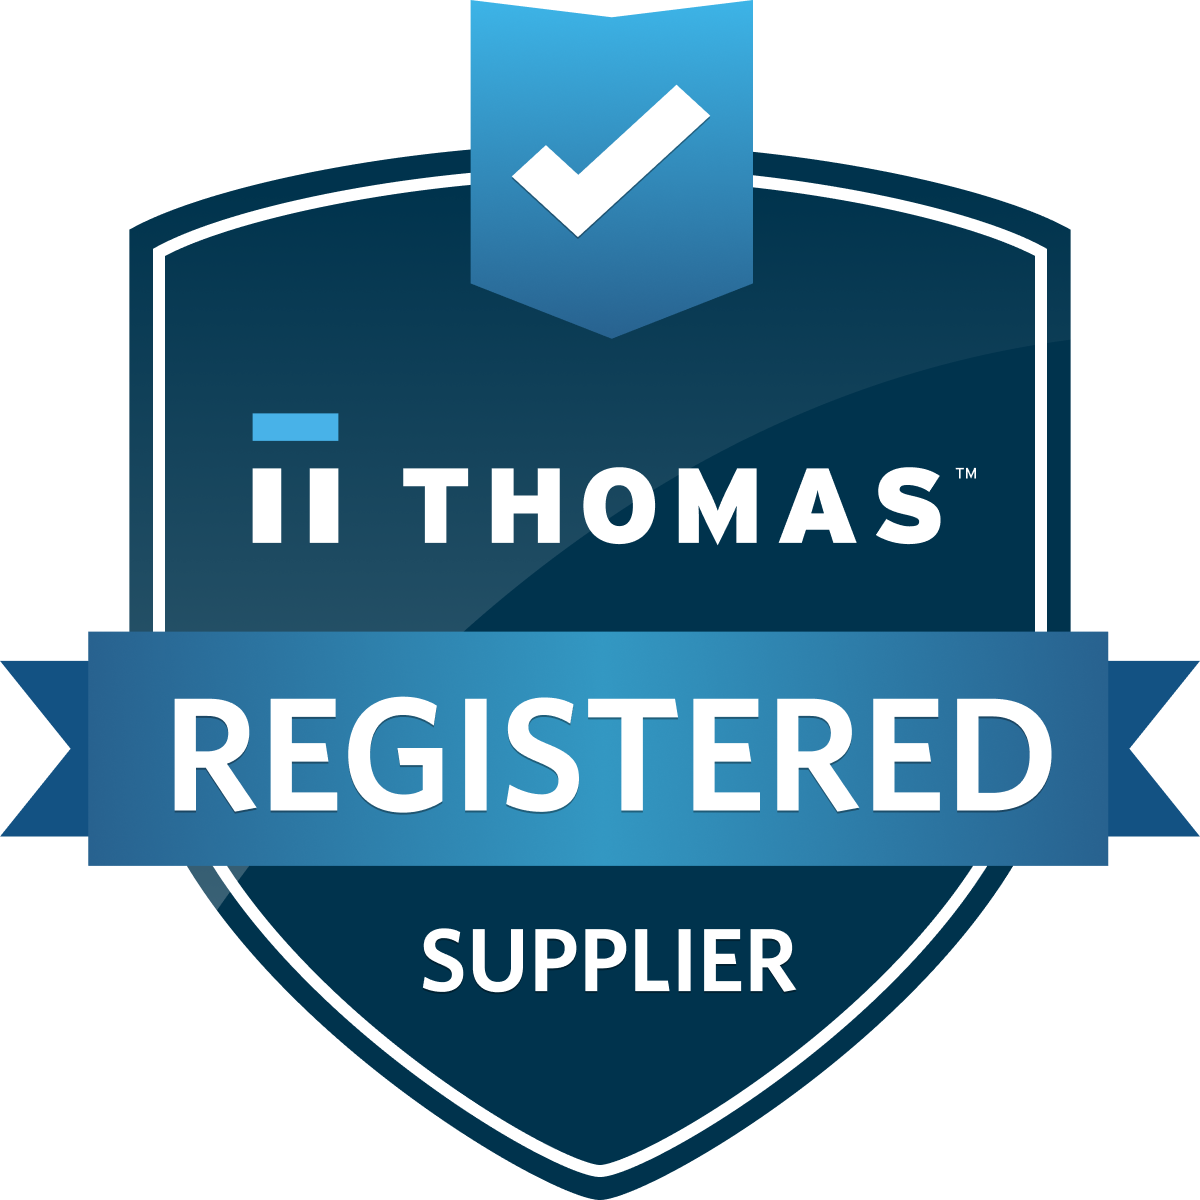 thomas-registered-supplier